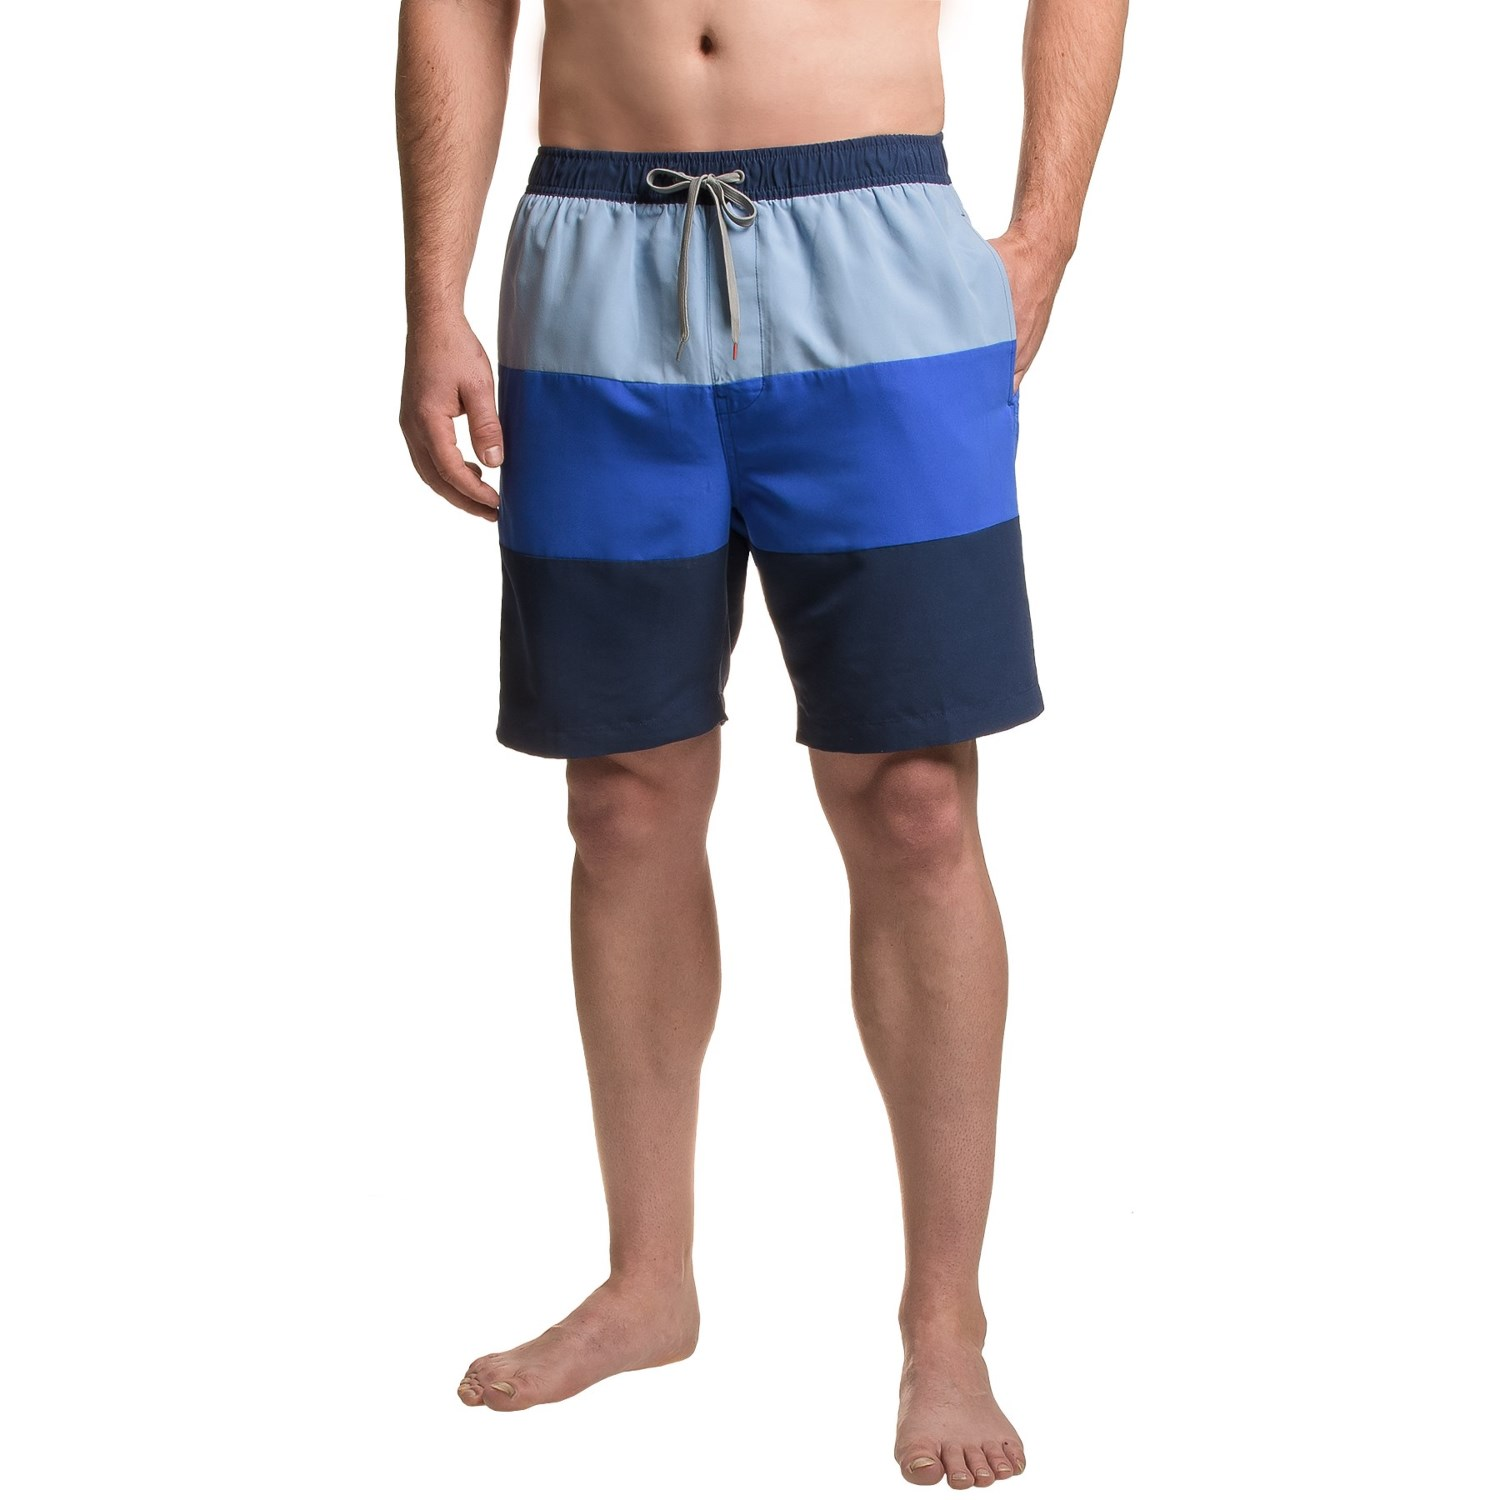 Boston Traders Color Block Volley Swim Trunks For Men